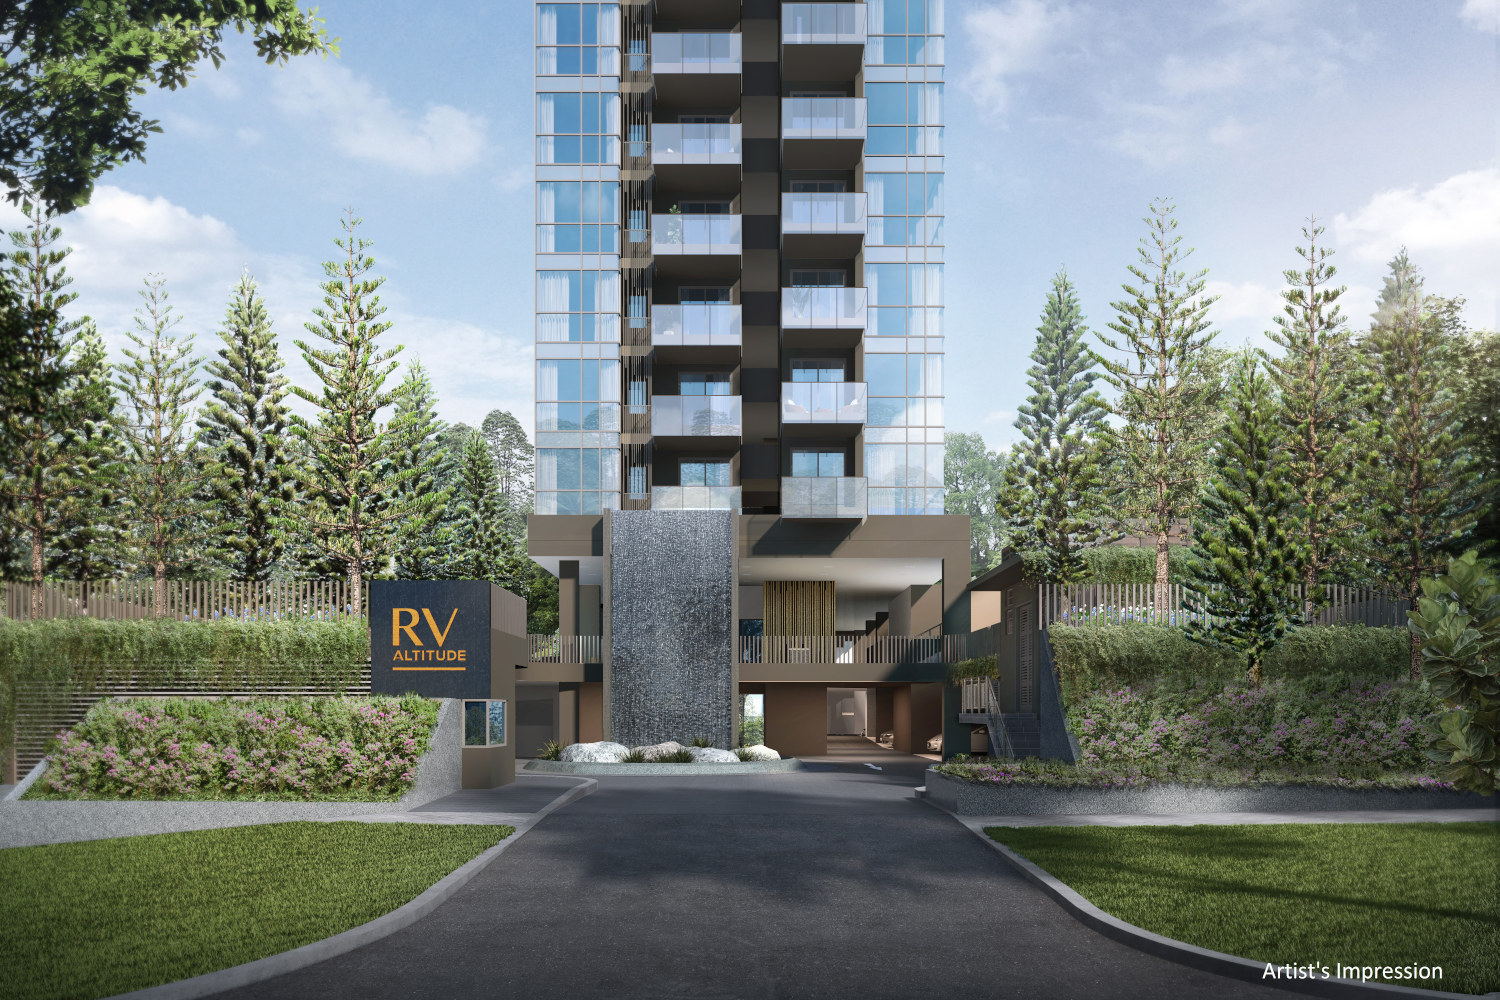 Artist's Impression . RV Altitude Singapore Main Entrance